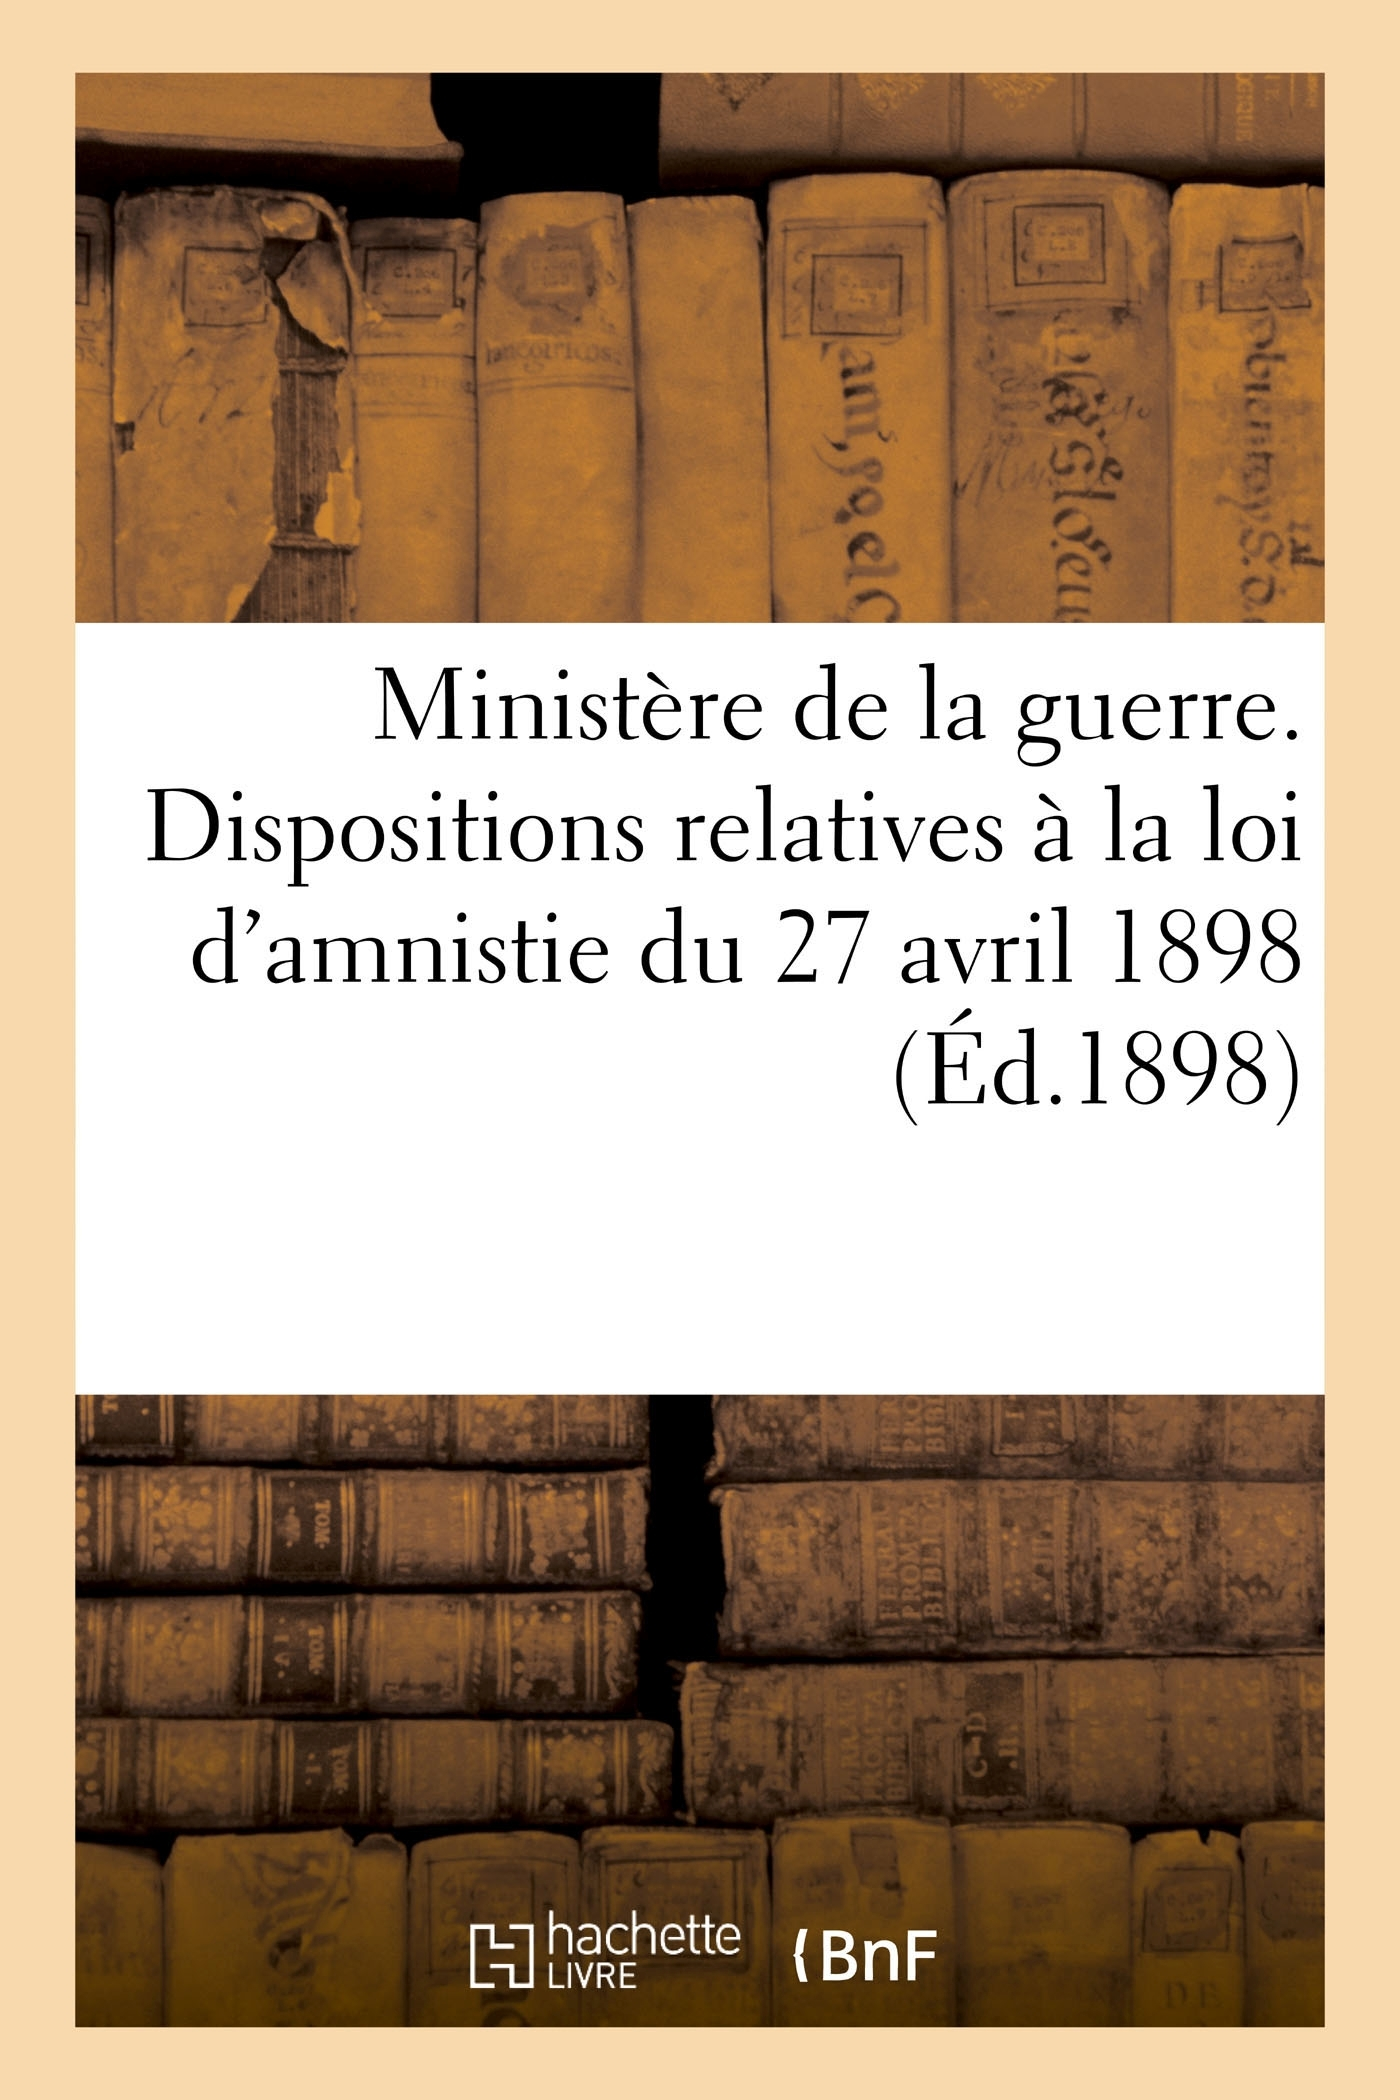 MINISTERE DE LA GUERRE. DISPOSITIONS RELATIVES A LA LOI D'AMNISTIE DU 27 AVRIL 1898